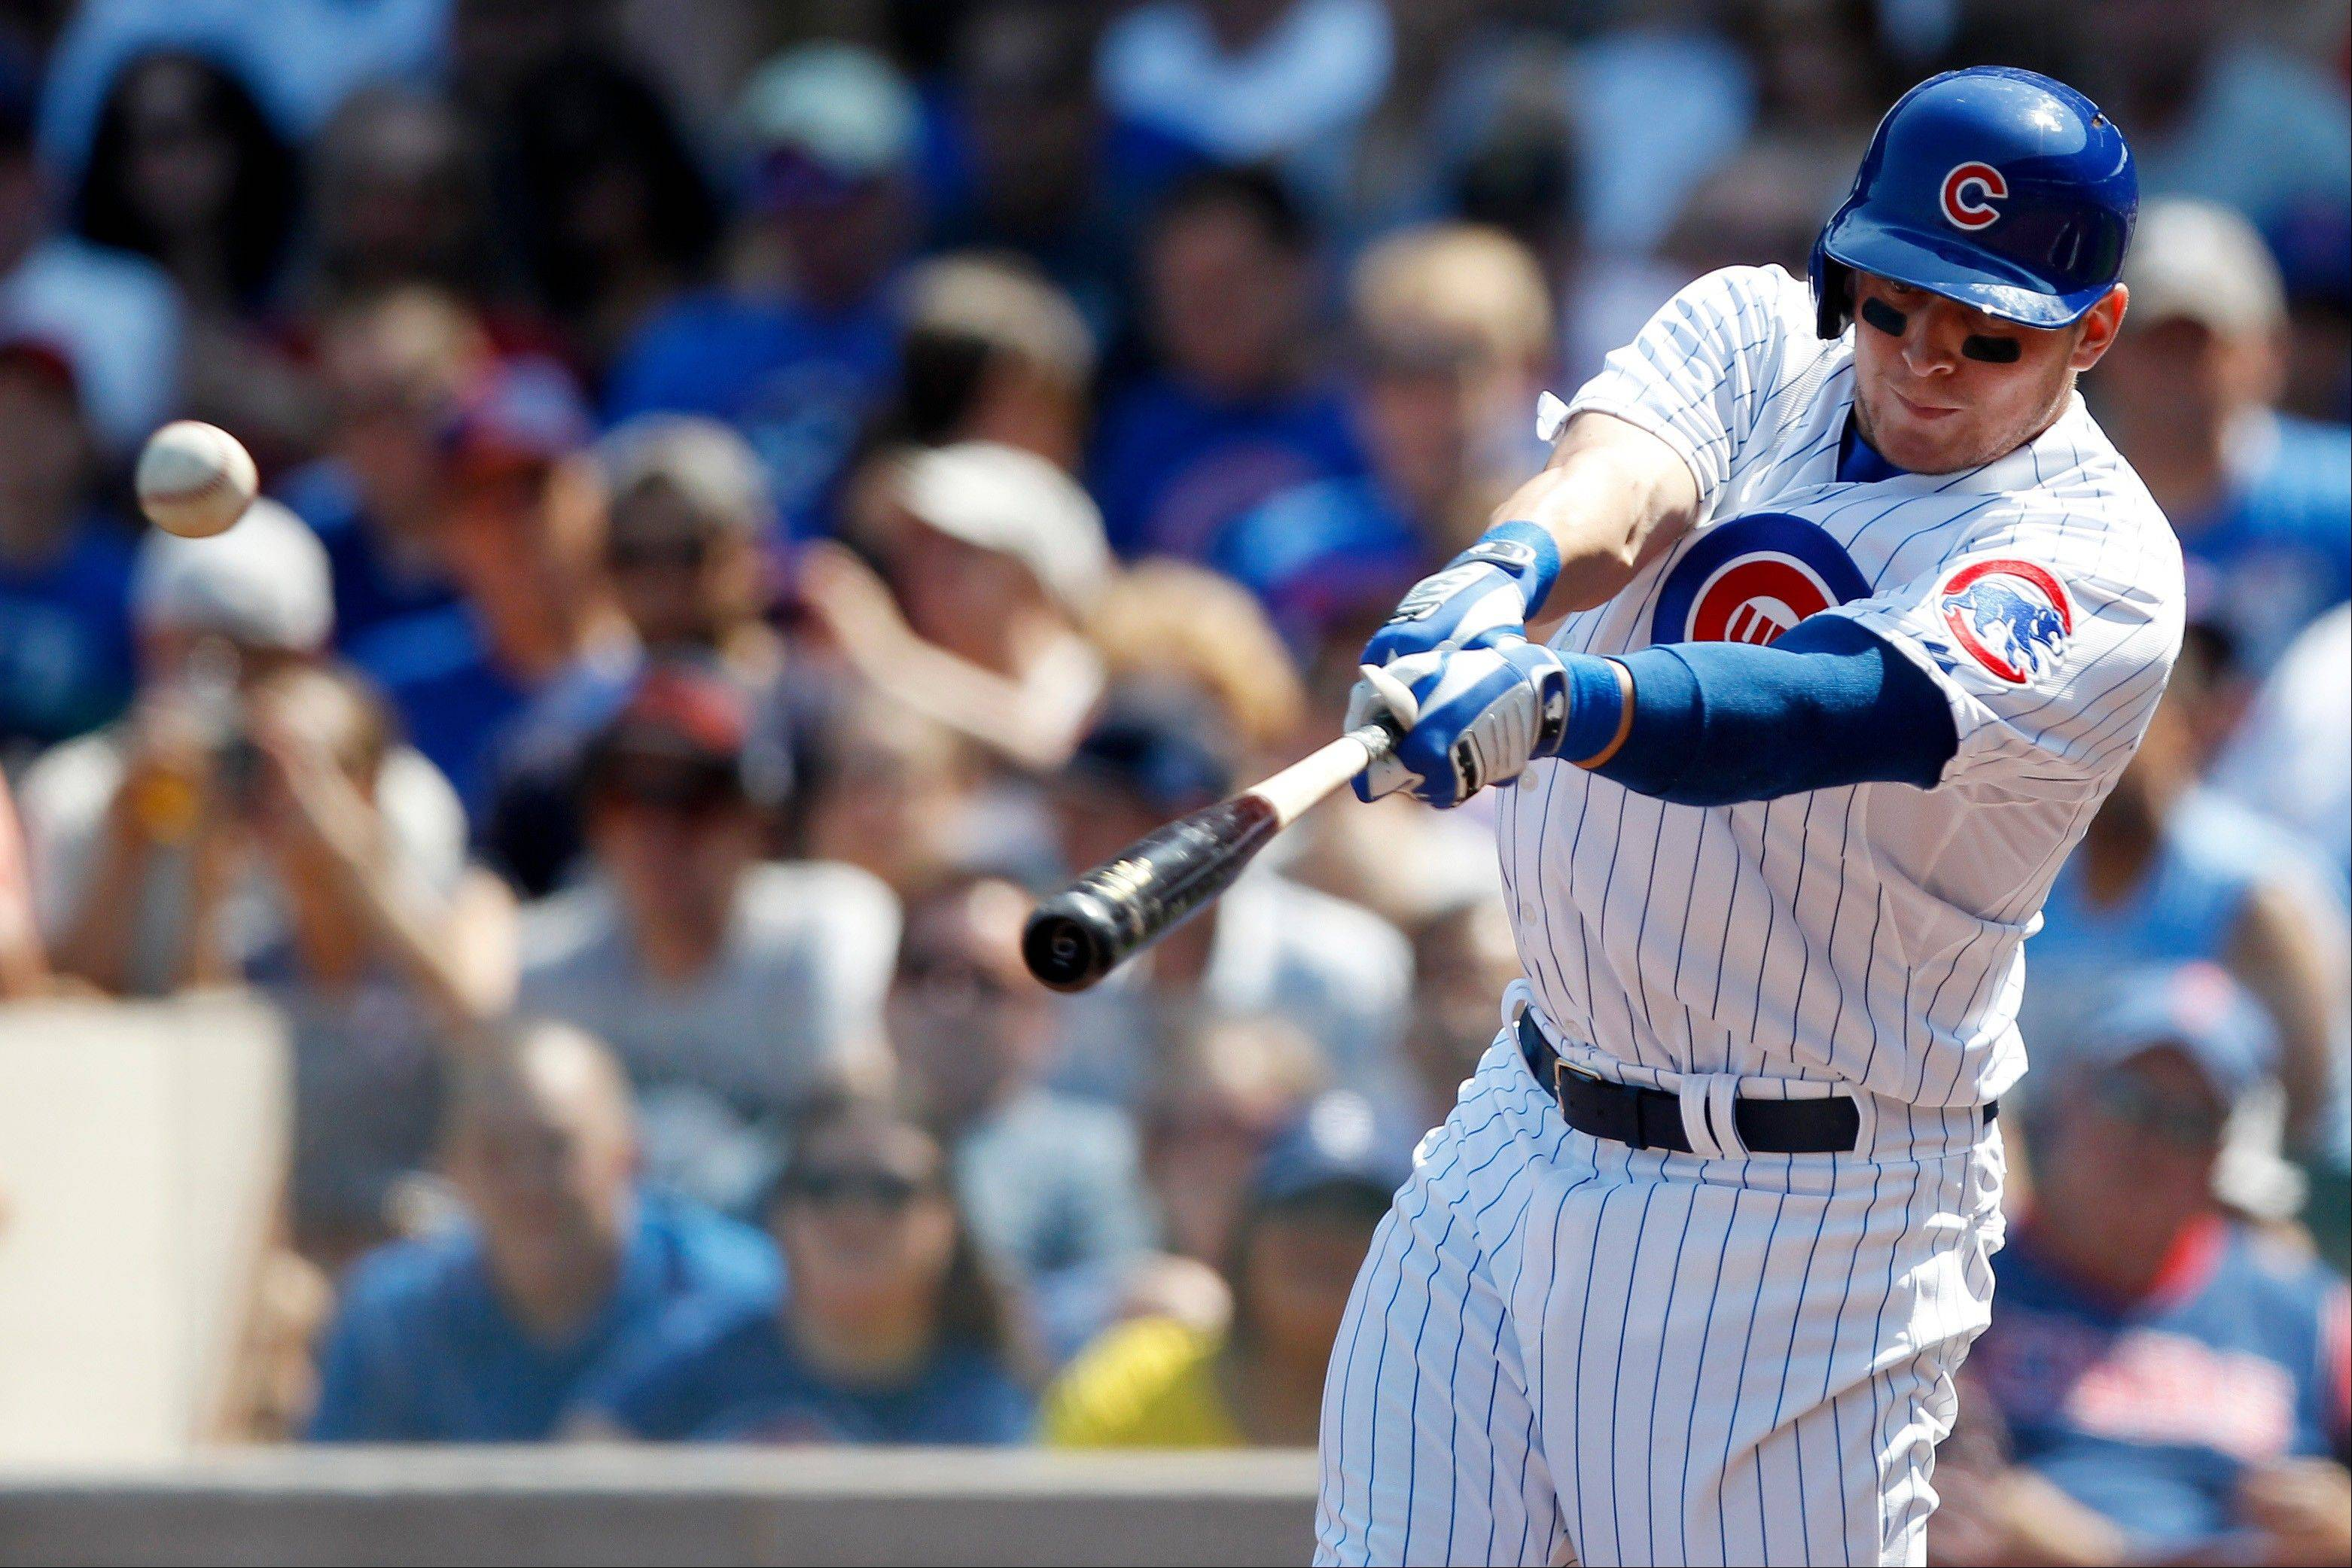 Back after missing two months with a broken rib, Ryan Sweeney hits a single Sunday in the Cubs� victory over the Phillies at Wrigley Field.